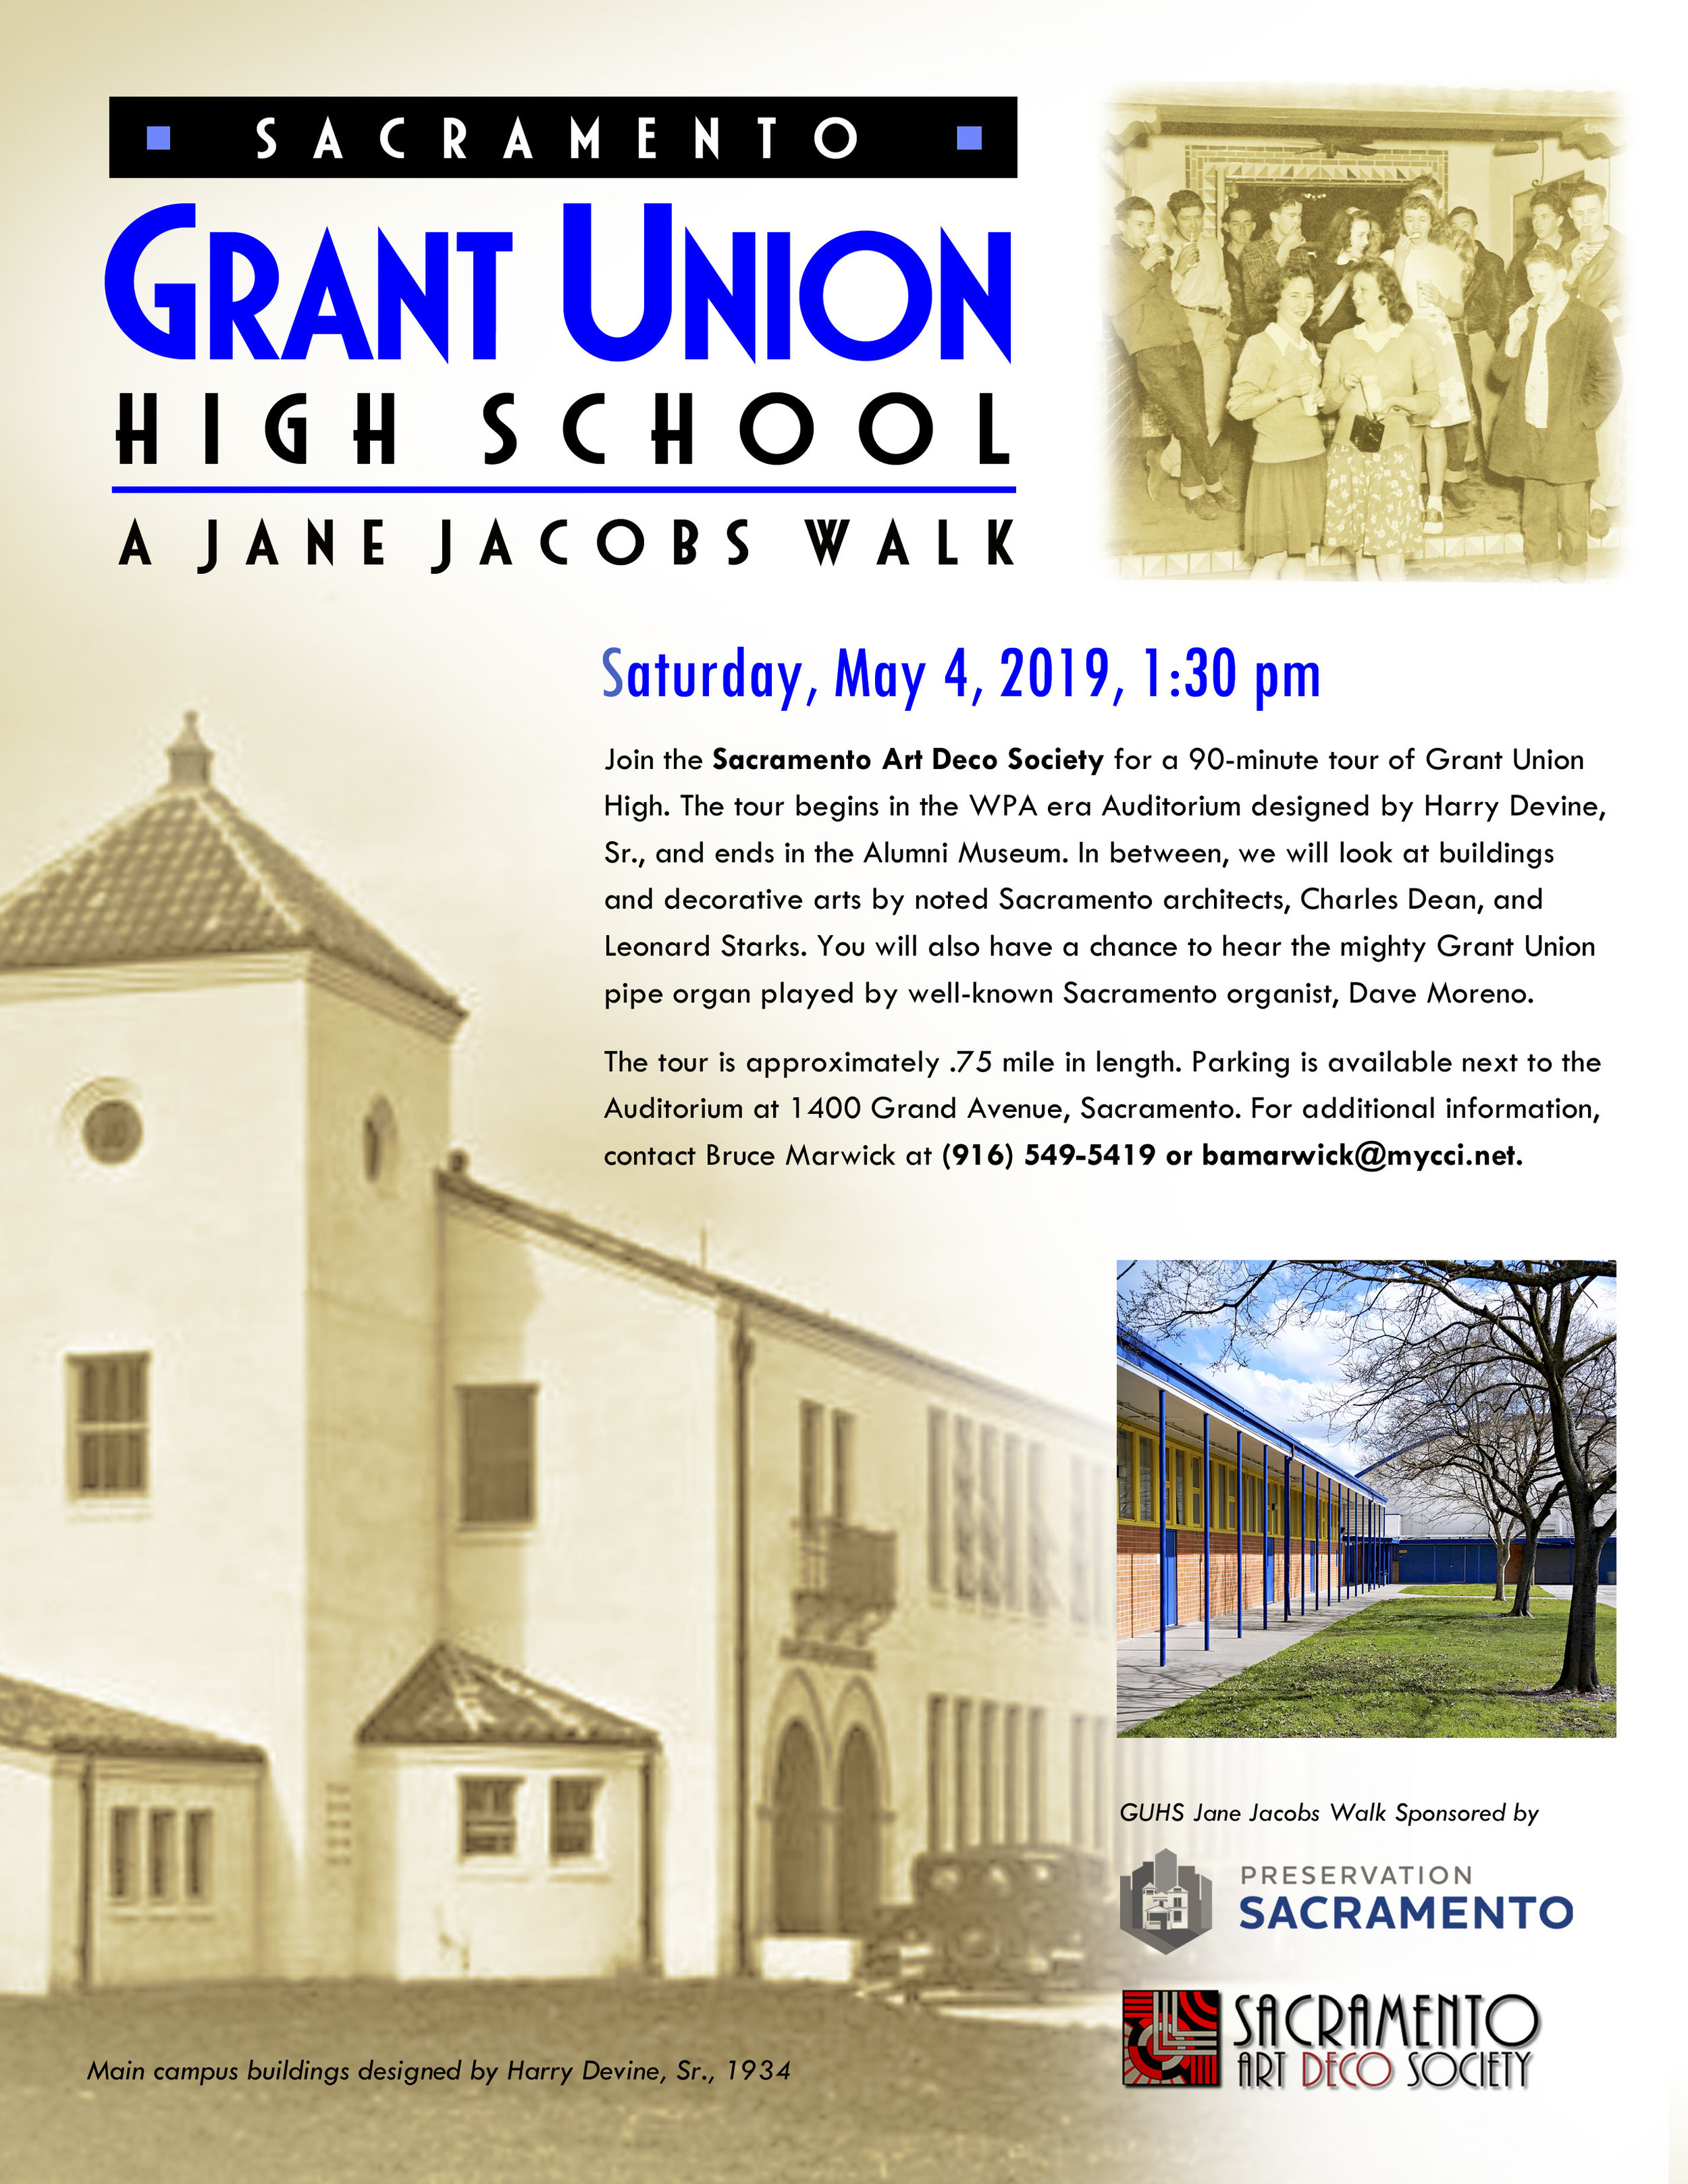 GUHS Walking Tour Flyer_Jane Jacobs_2019.jpg